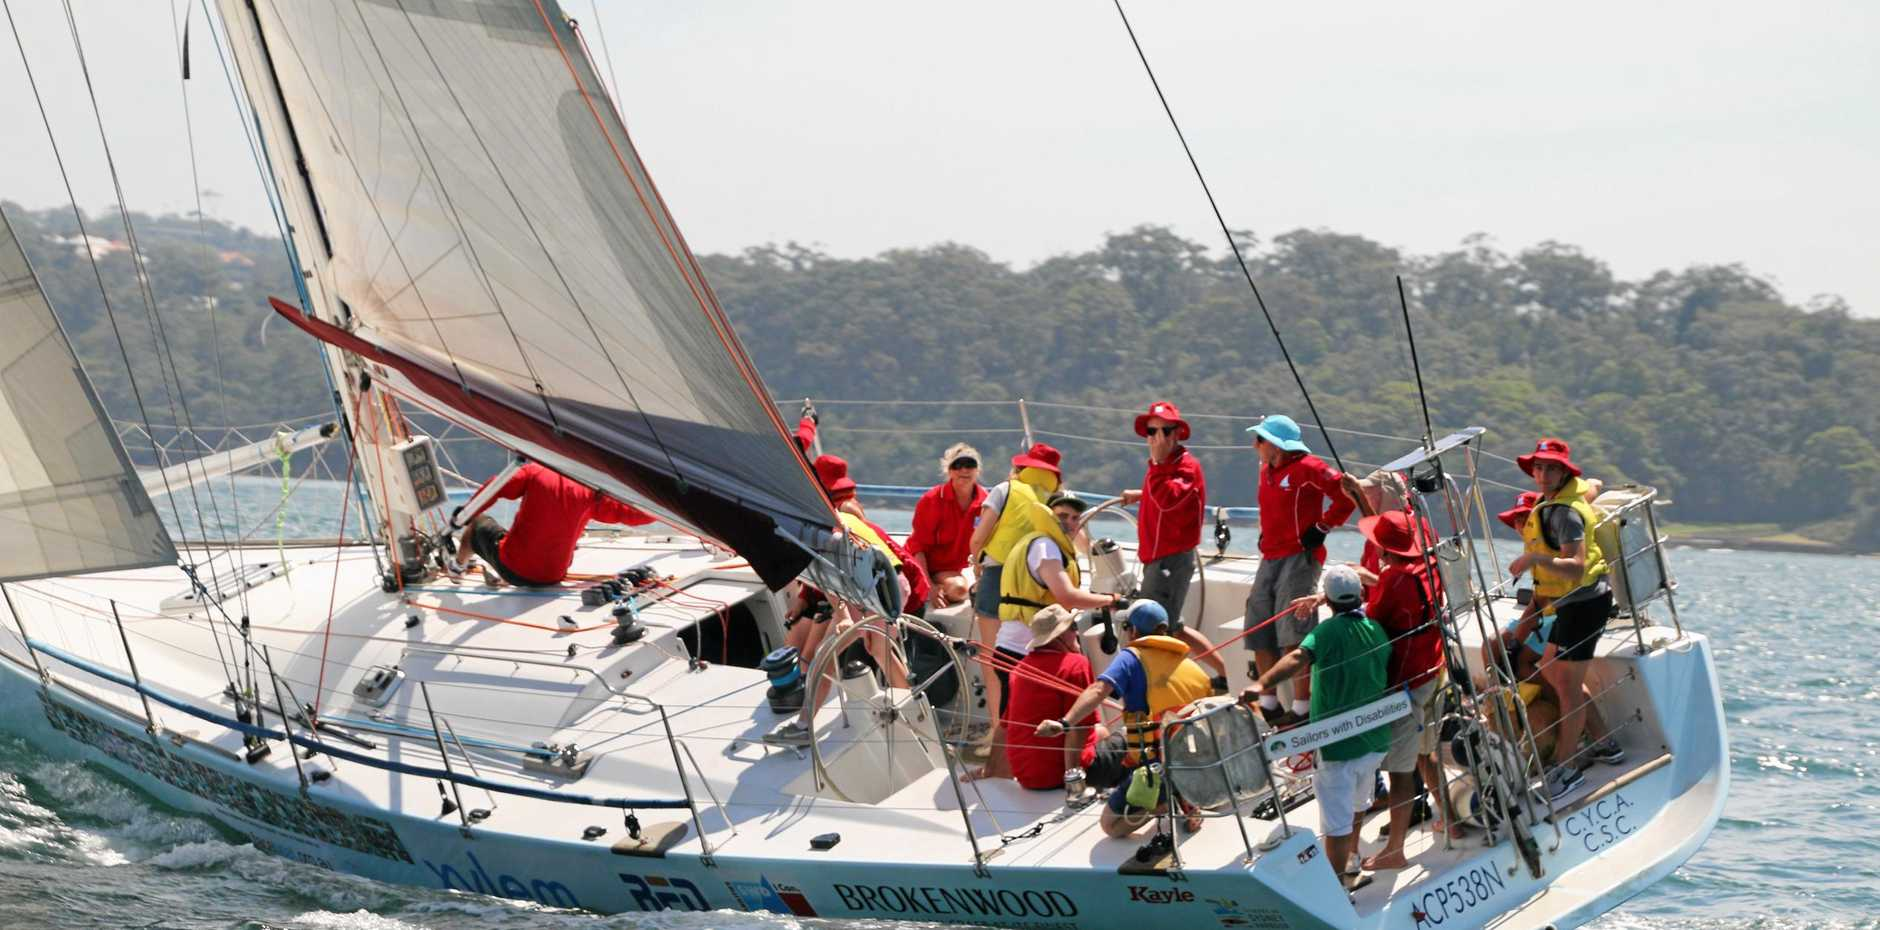 SETTING SAIL: Charity Sailors with disABILITIES has docked in Coffs, giving children with disabilities a chance to sail the 54-foot racing yacht Kayle.